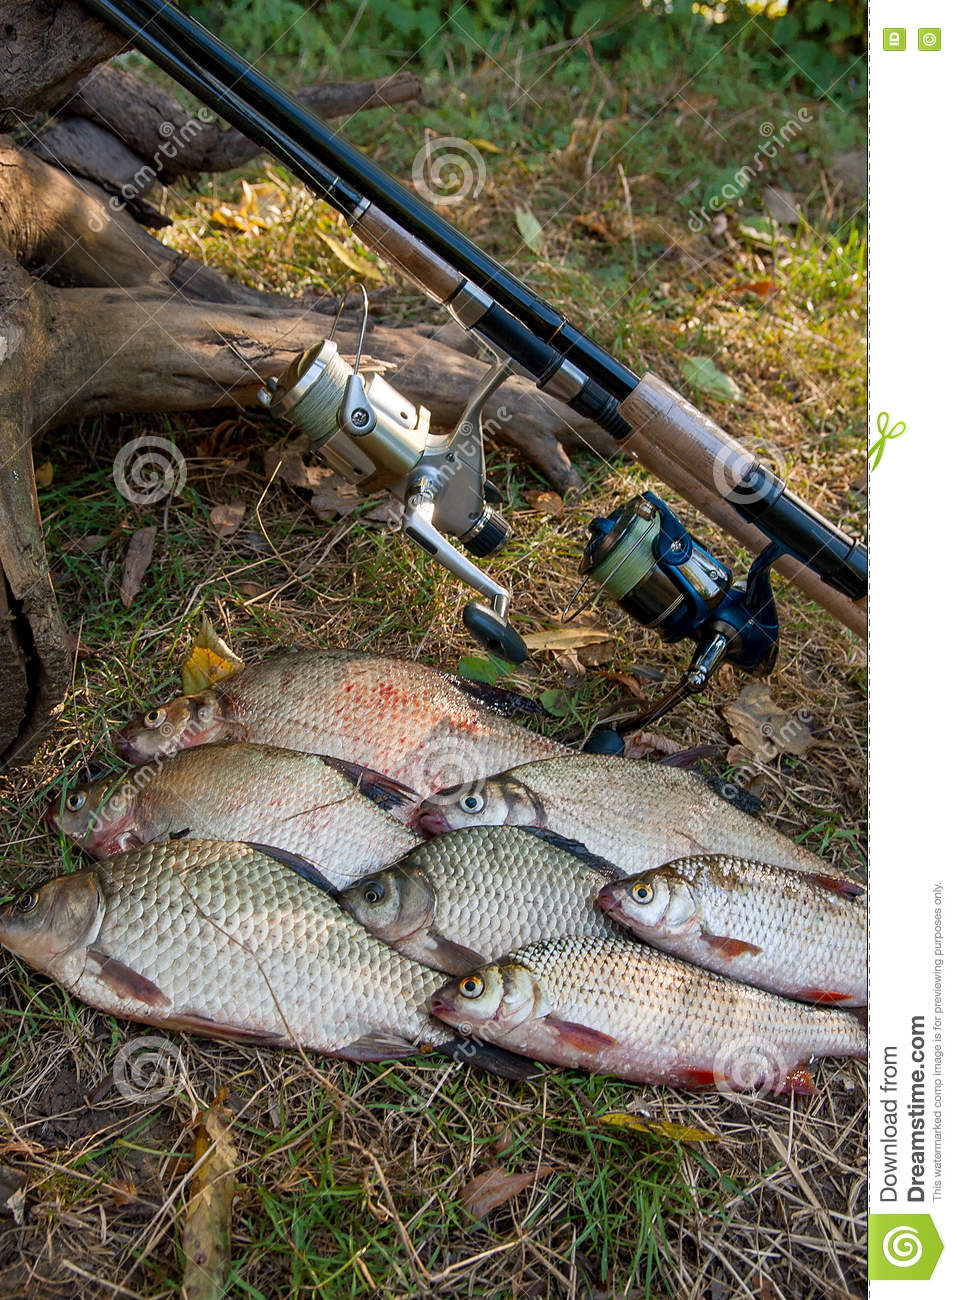 Freshwater fish bream - Pile Of The Common Bream Fish Crucian Fish Or Carassius Roach